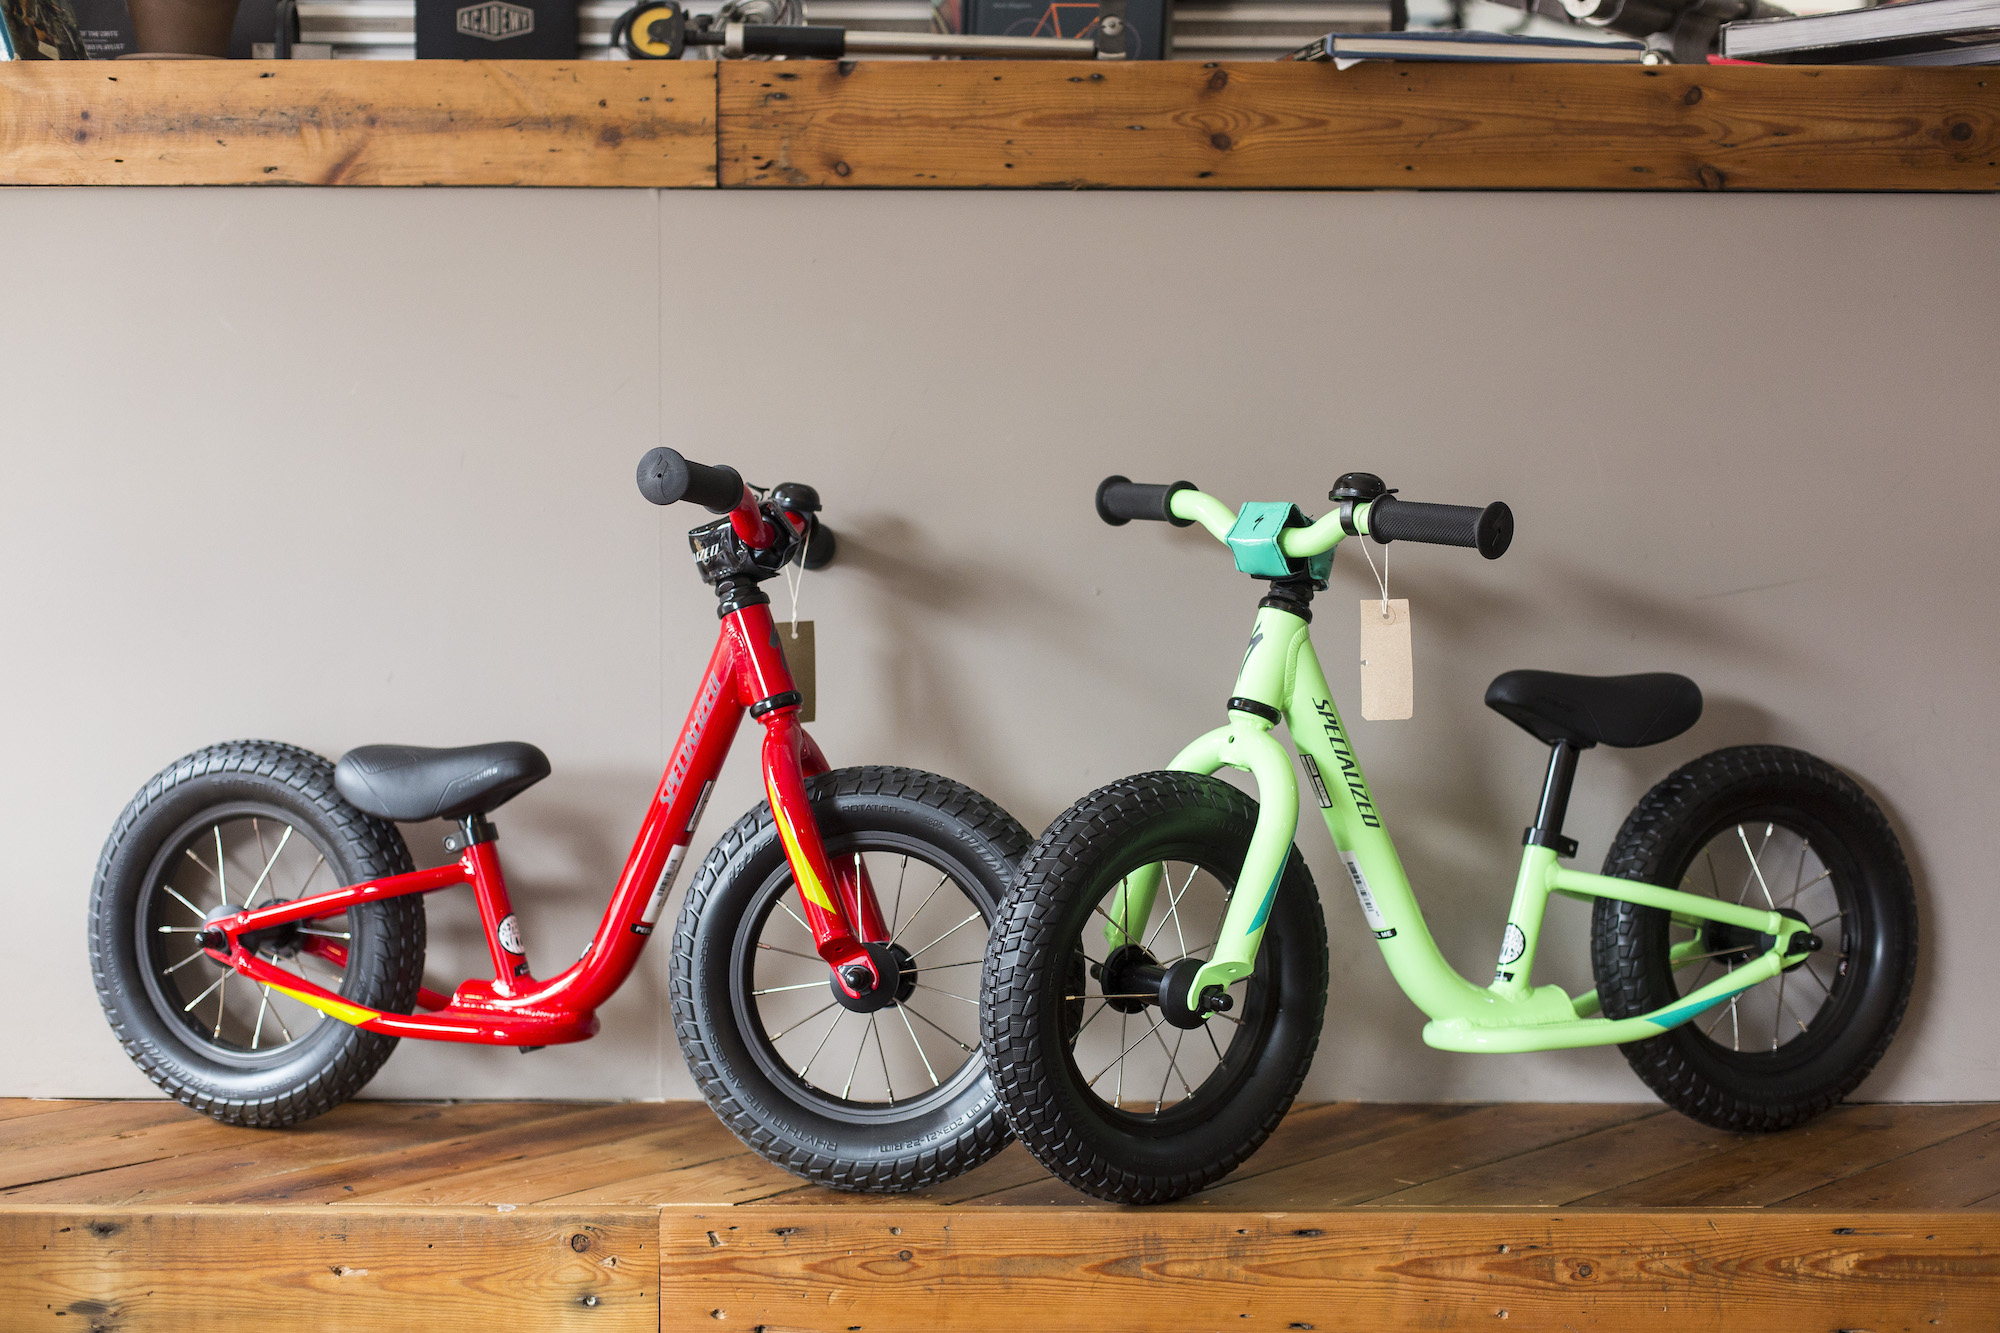 seabass-cycles-bikes-parts-instore-2-april-2019-specialized-hotwalk-4207.jpg